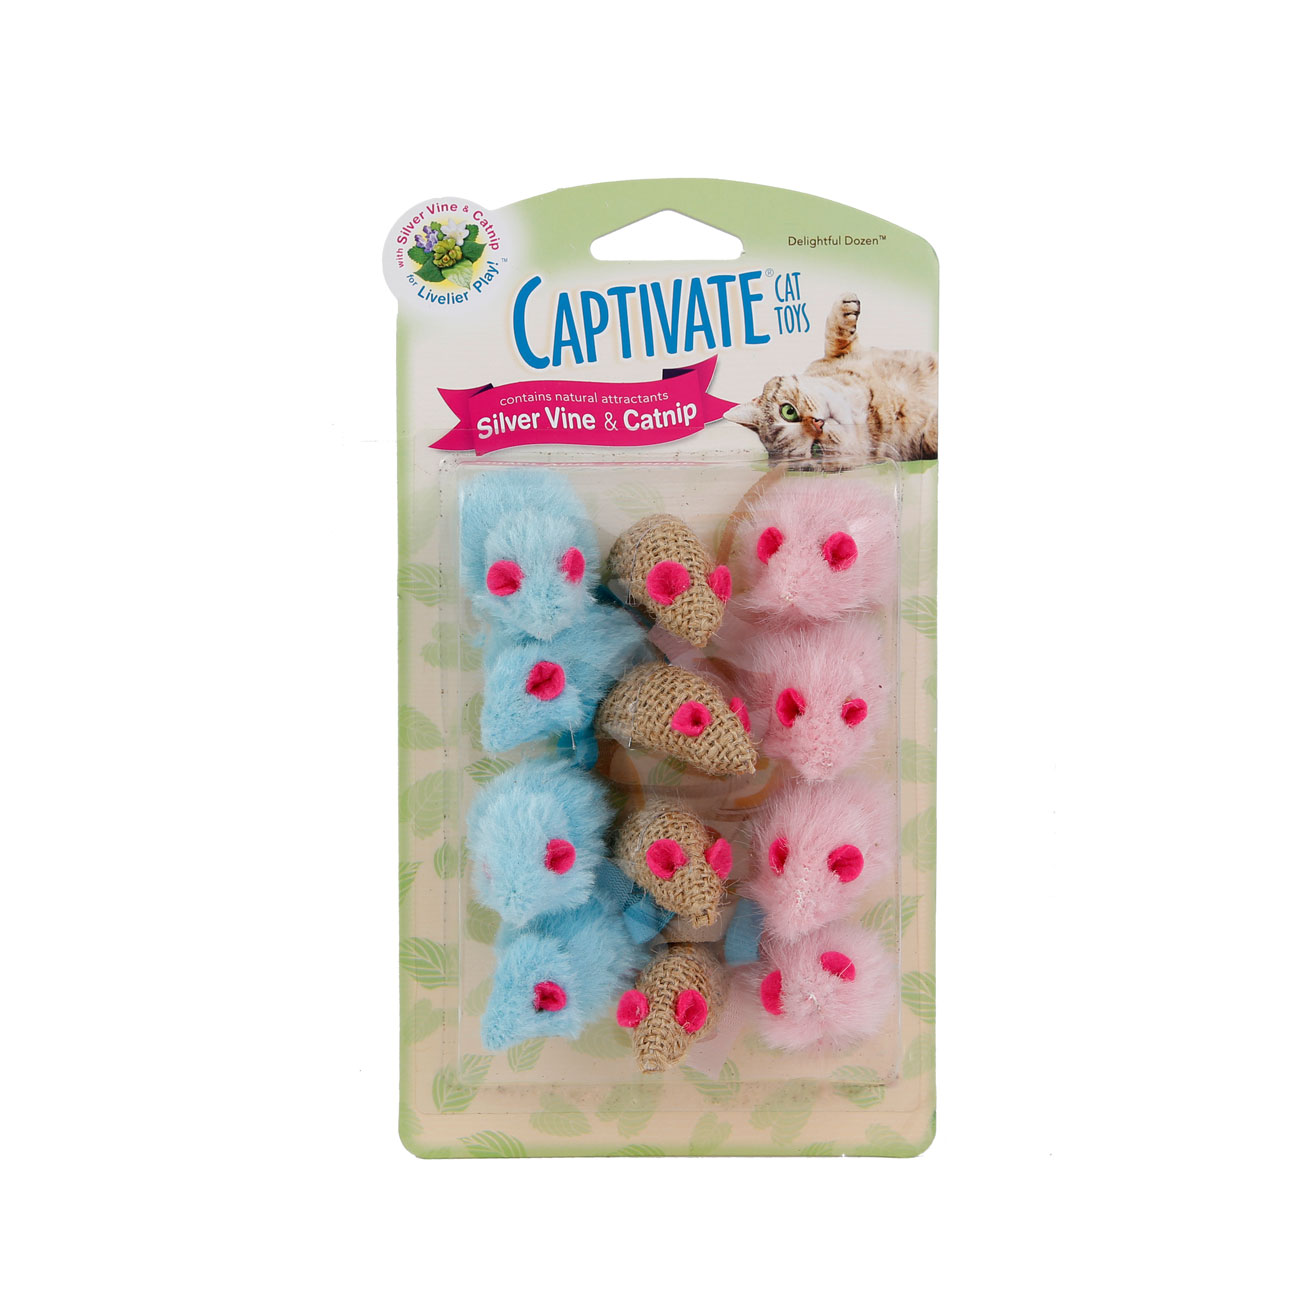 Hartz captivate delightful dozen cat toy with silver vine and catnip. Front of package. Hartz SKU#3270011255